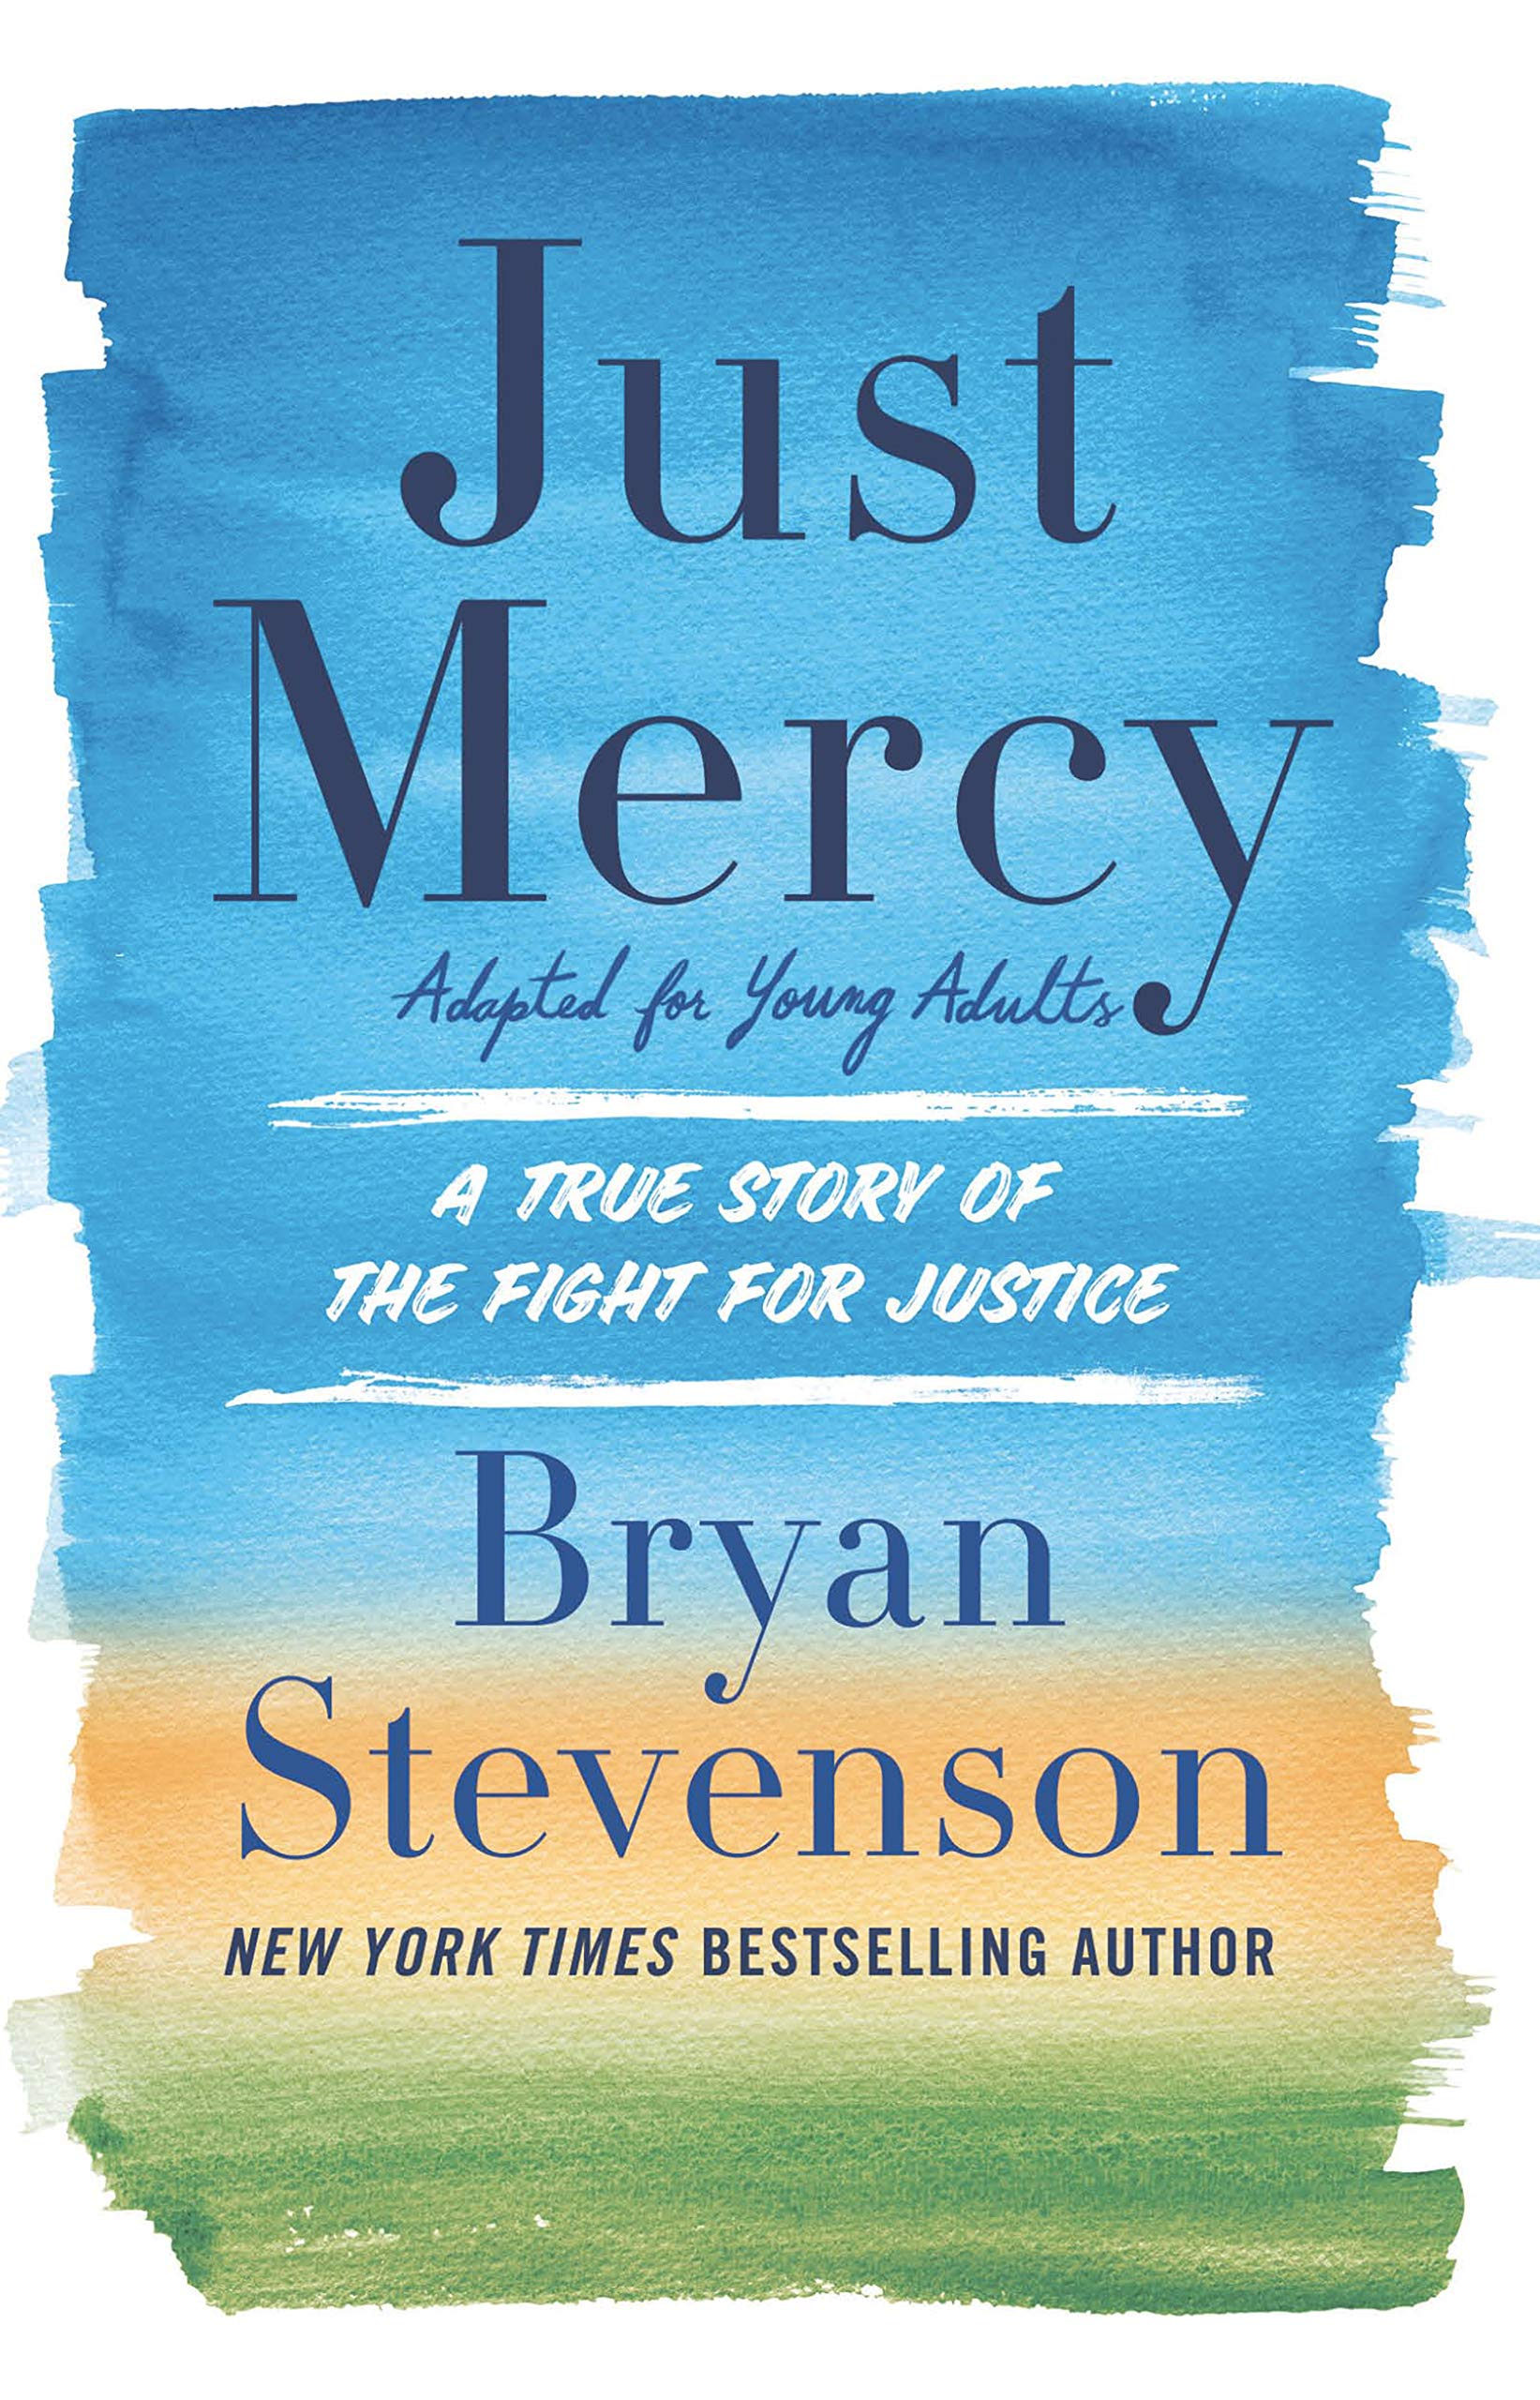 Just Mercy (Adapted for Young Adults): A True Story of the Fight for Justice (Thorndike Press Large Print Literacy Bridge Series)